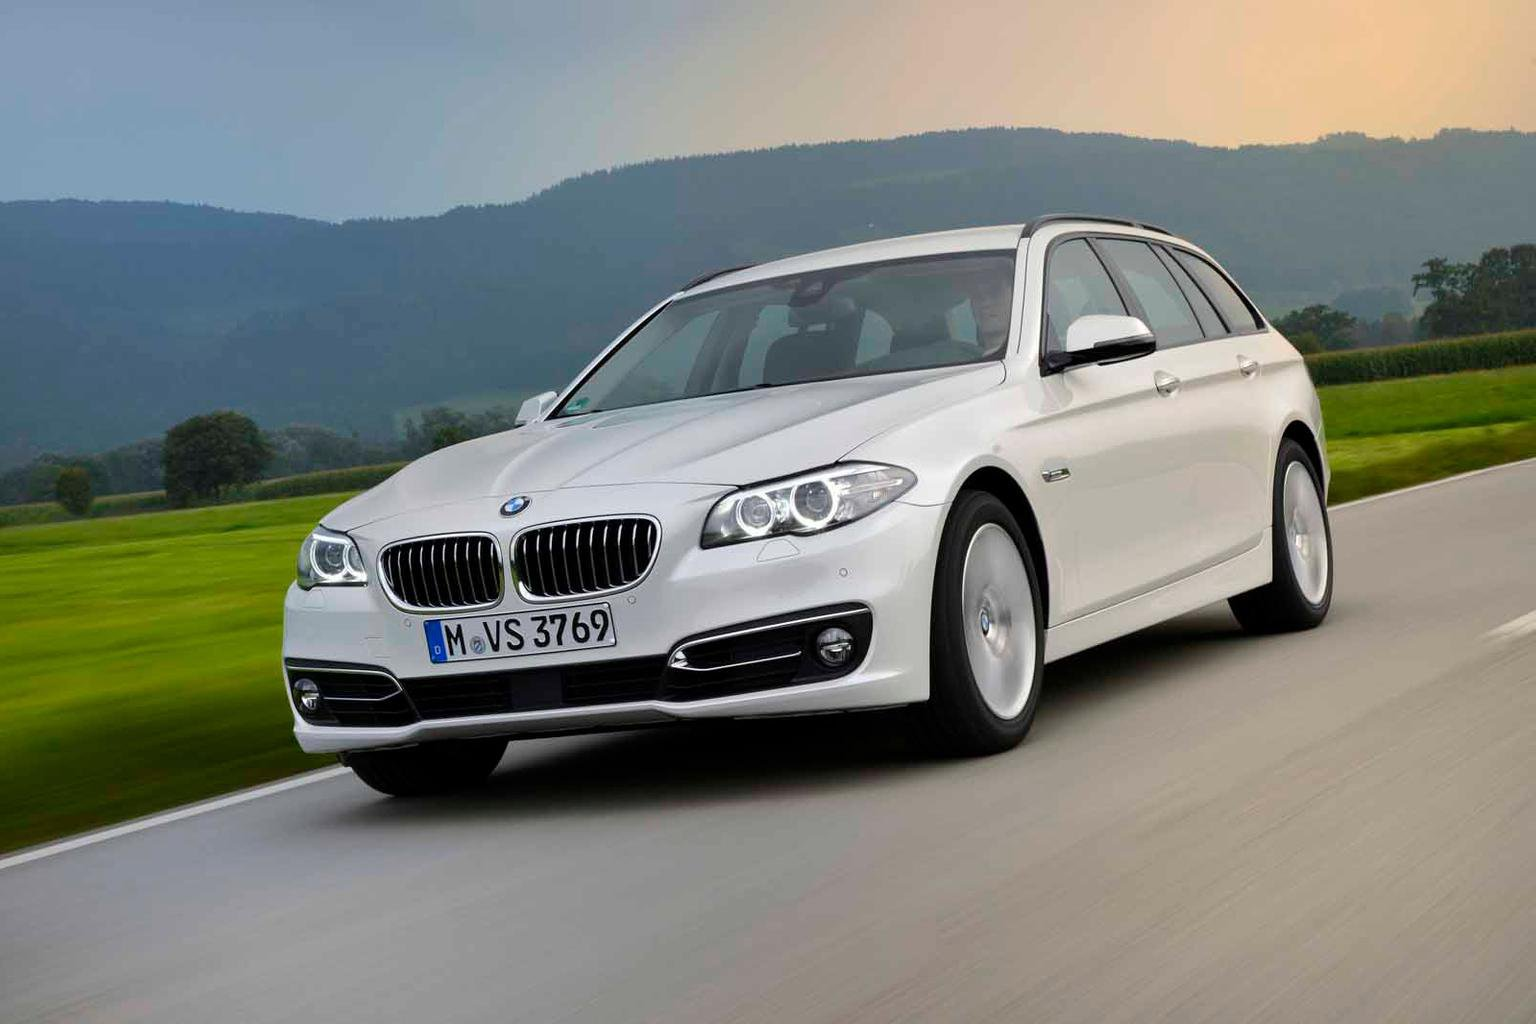 2014 BMW 5 Series Touring review